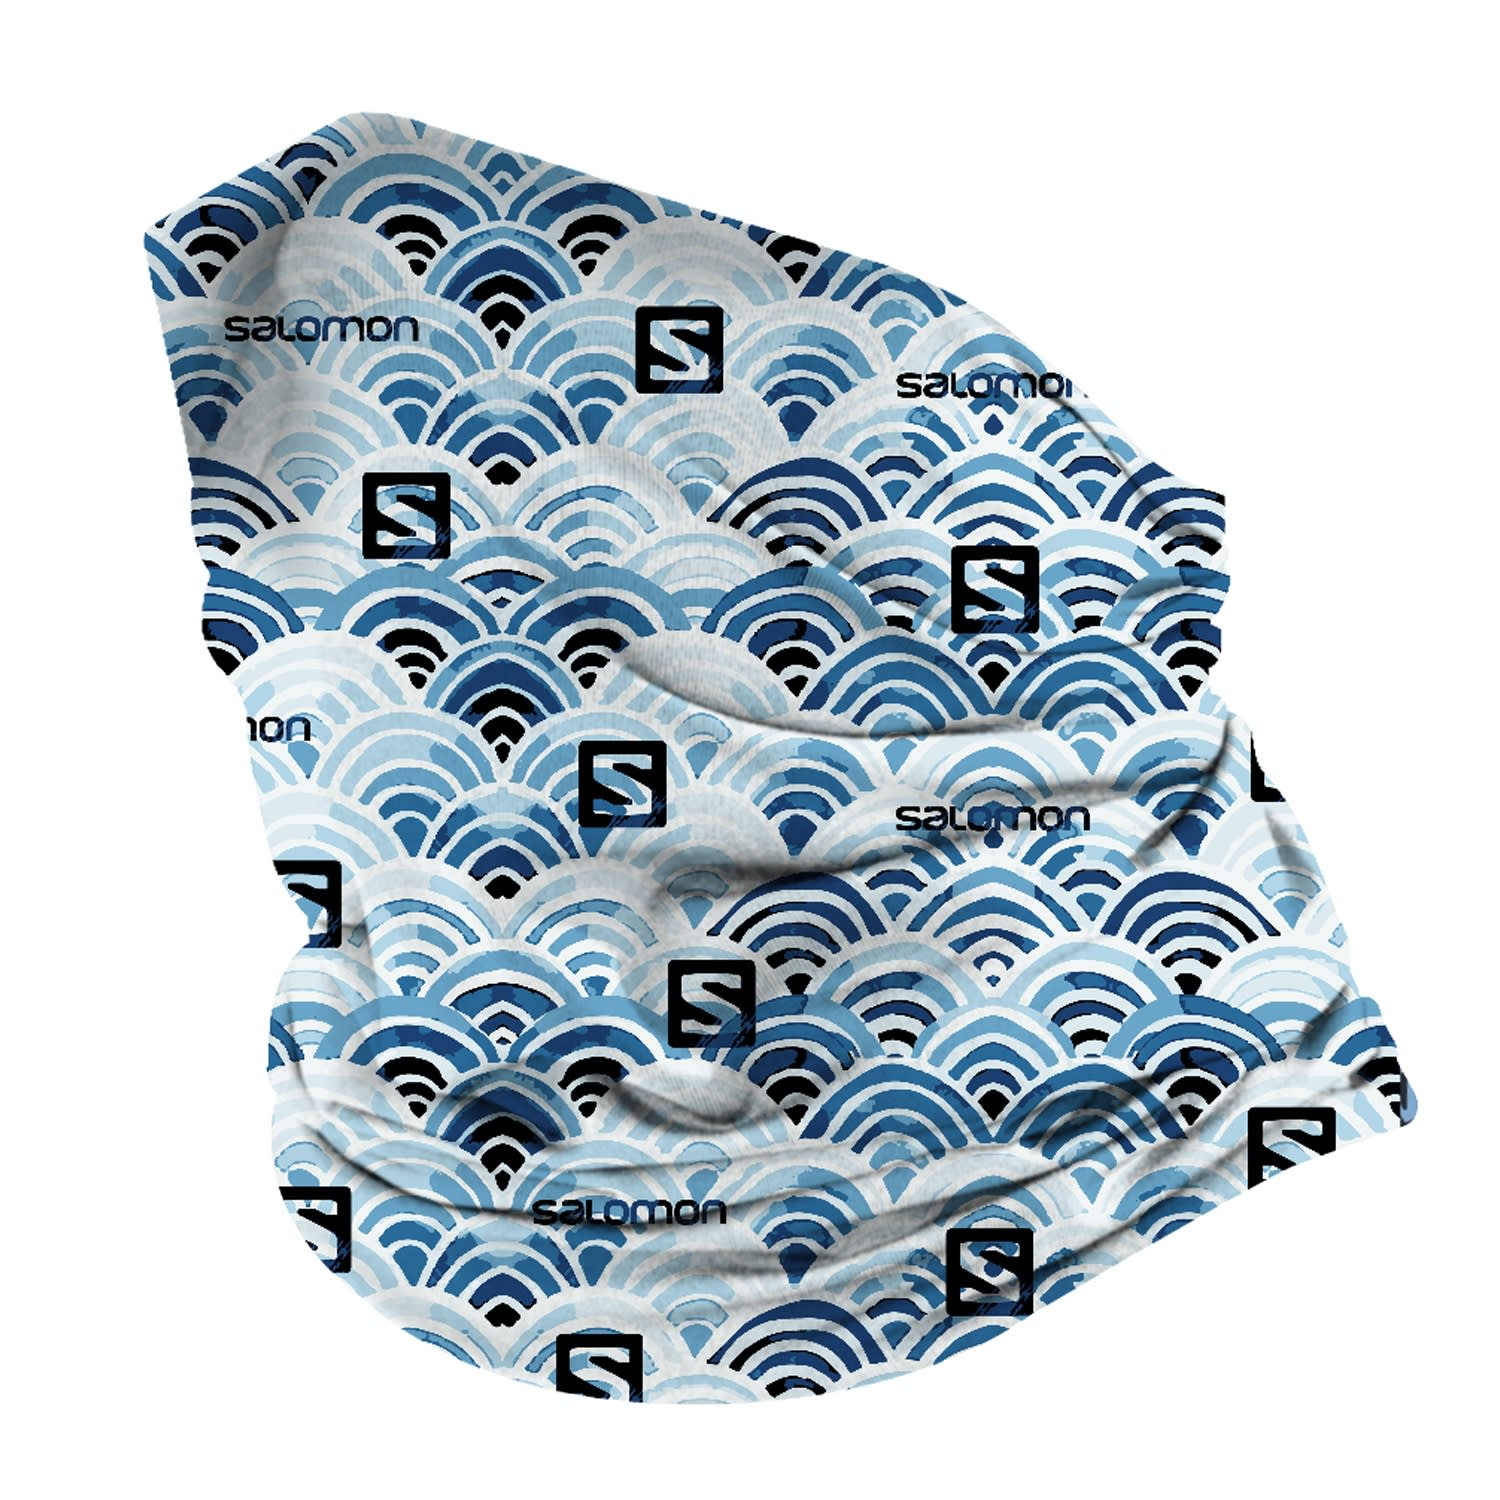 Salomon Indigo Neck scarf